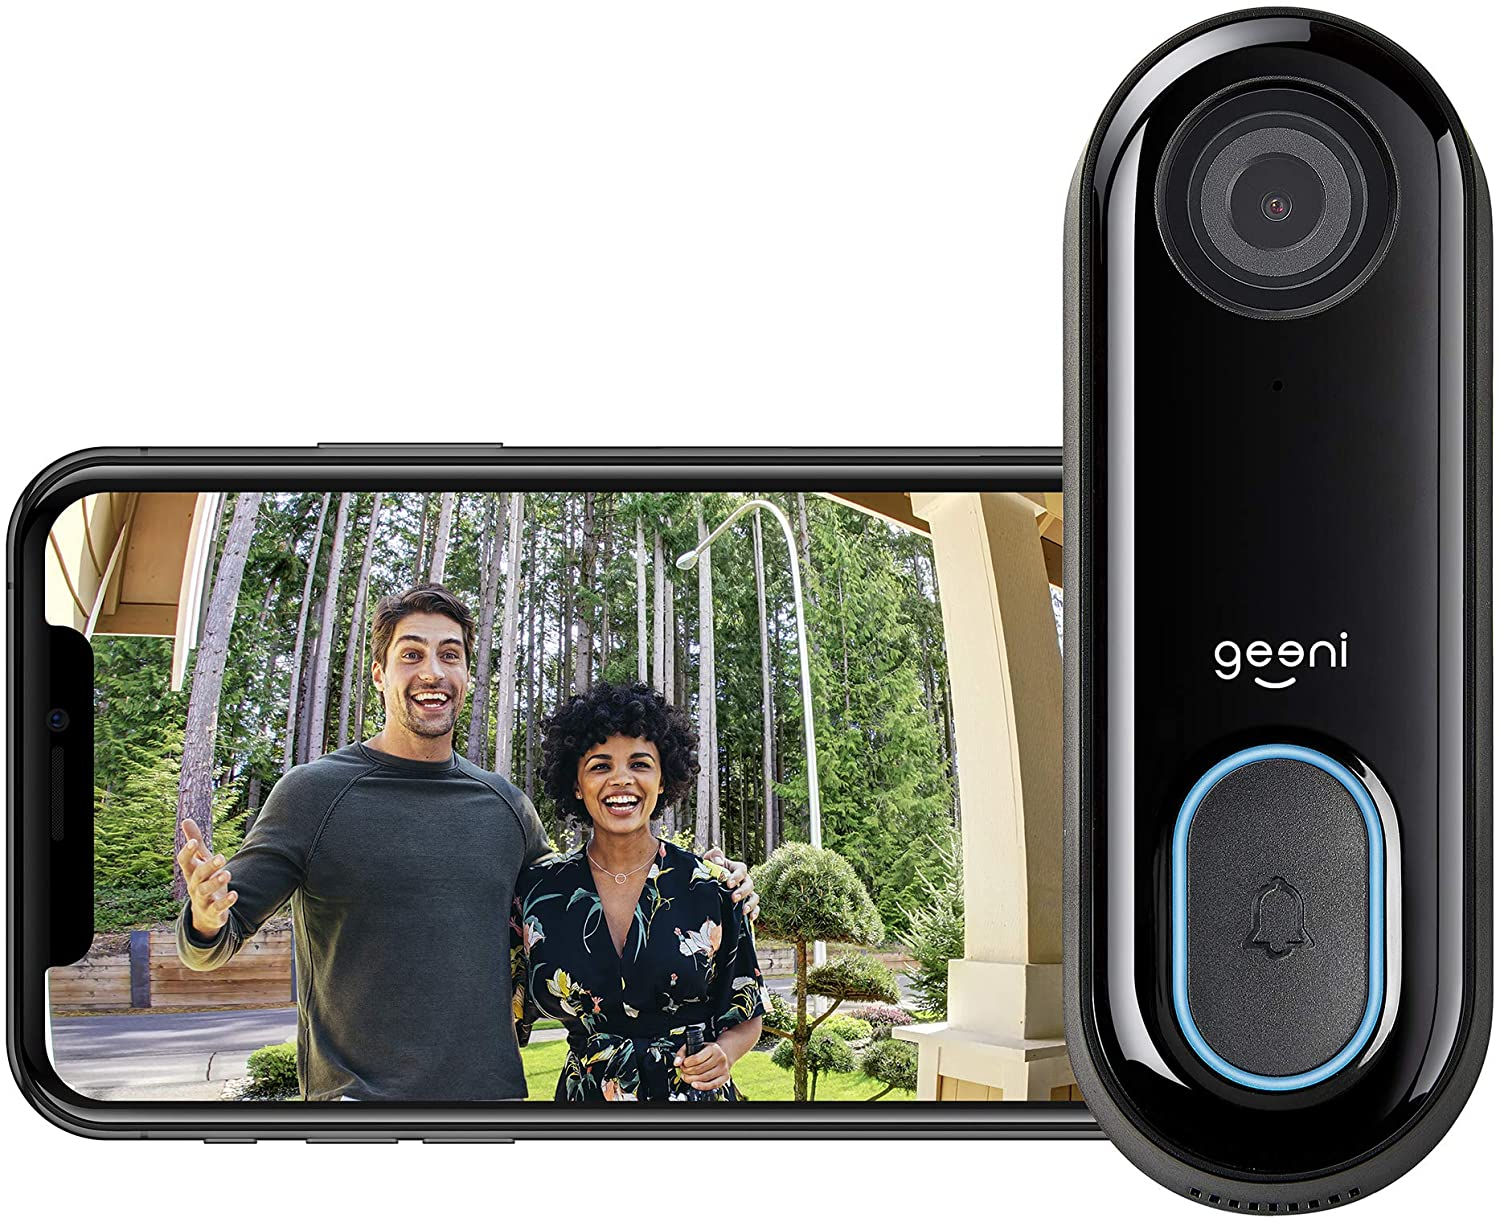 Geeni Video Doorbell | HD 1080p Video Quality, Weather-Resistant, 2-Way Audio | Motion Detection and Alerts | Easy Installation (Existing Doorbell Wiring Required) | Requires 2.4GHz WiFi | Black